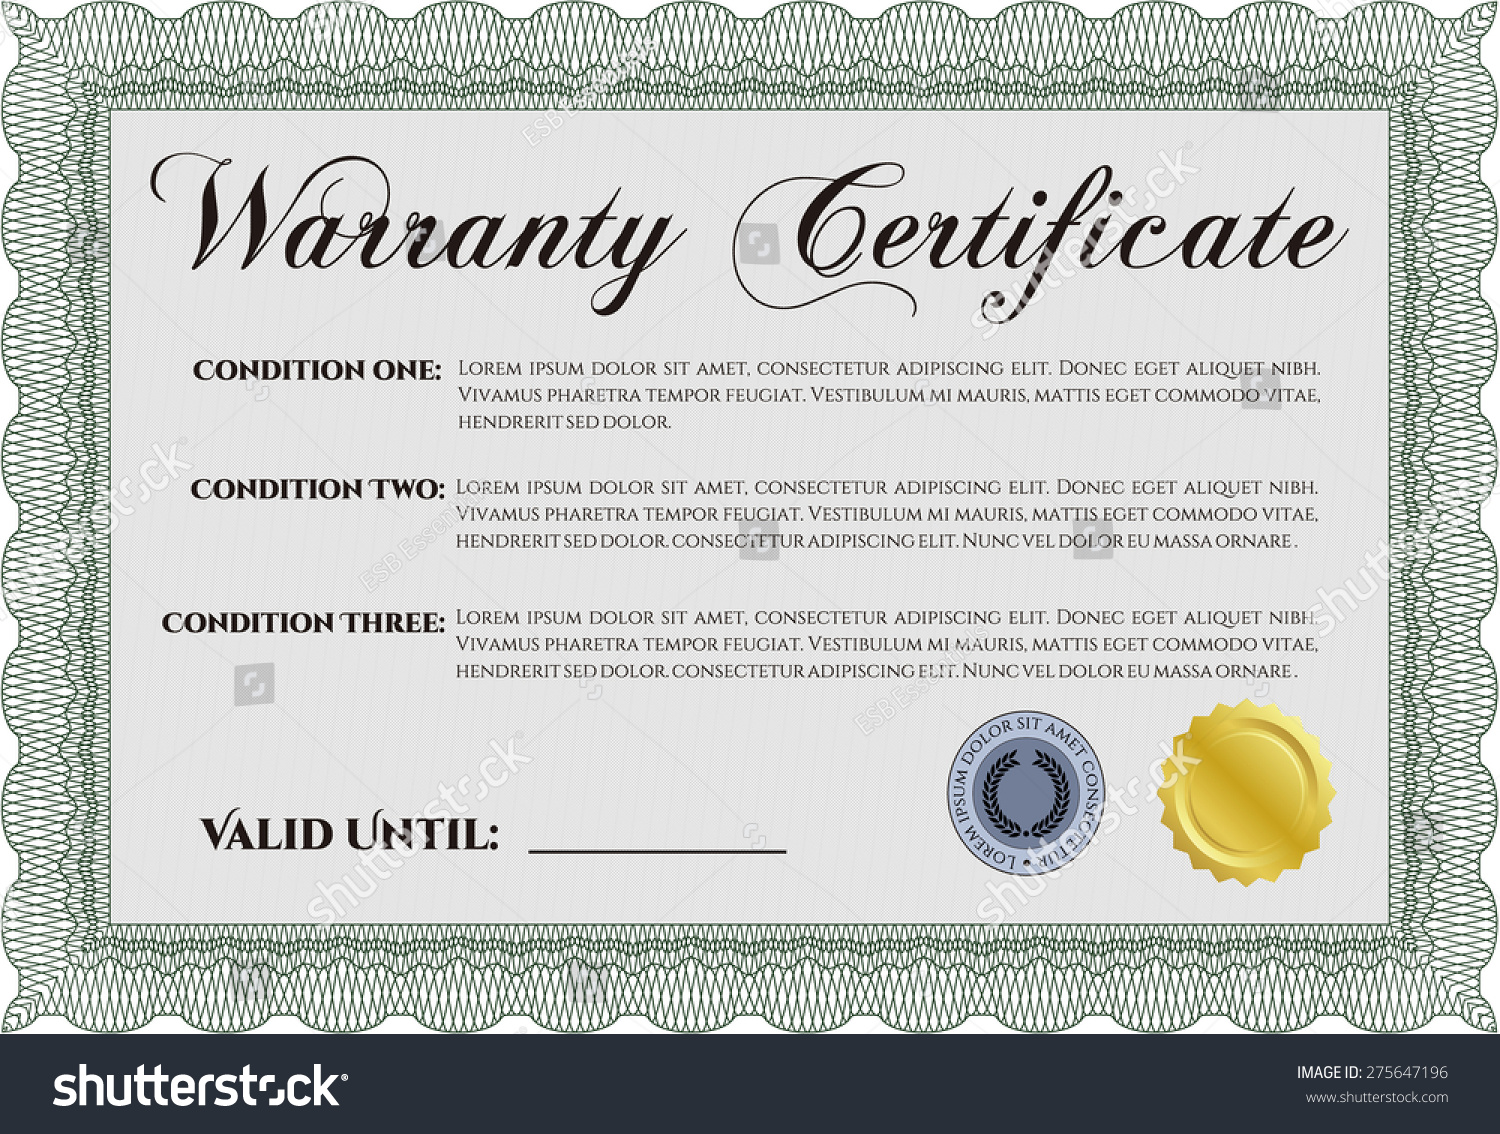 Download lifetime warranty certificate template microsoft office sample warranty certificate template sample text stock vector stock vector sample warranty certificate template with sample yelopaper Choice Image